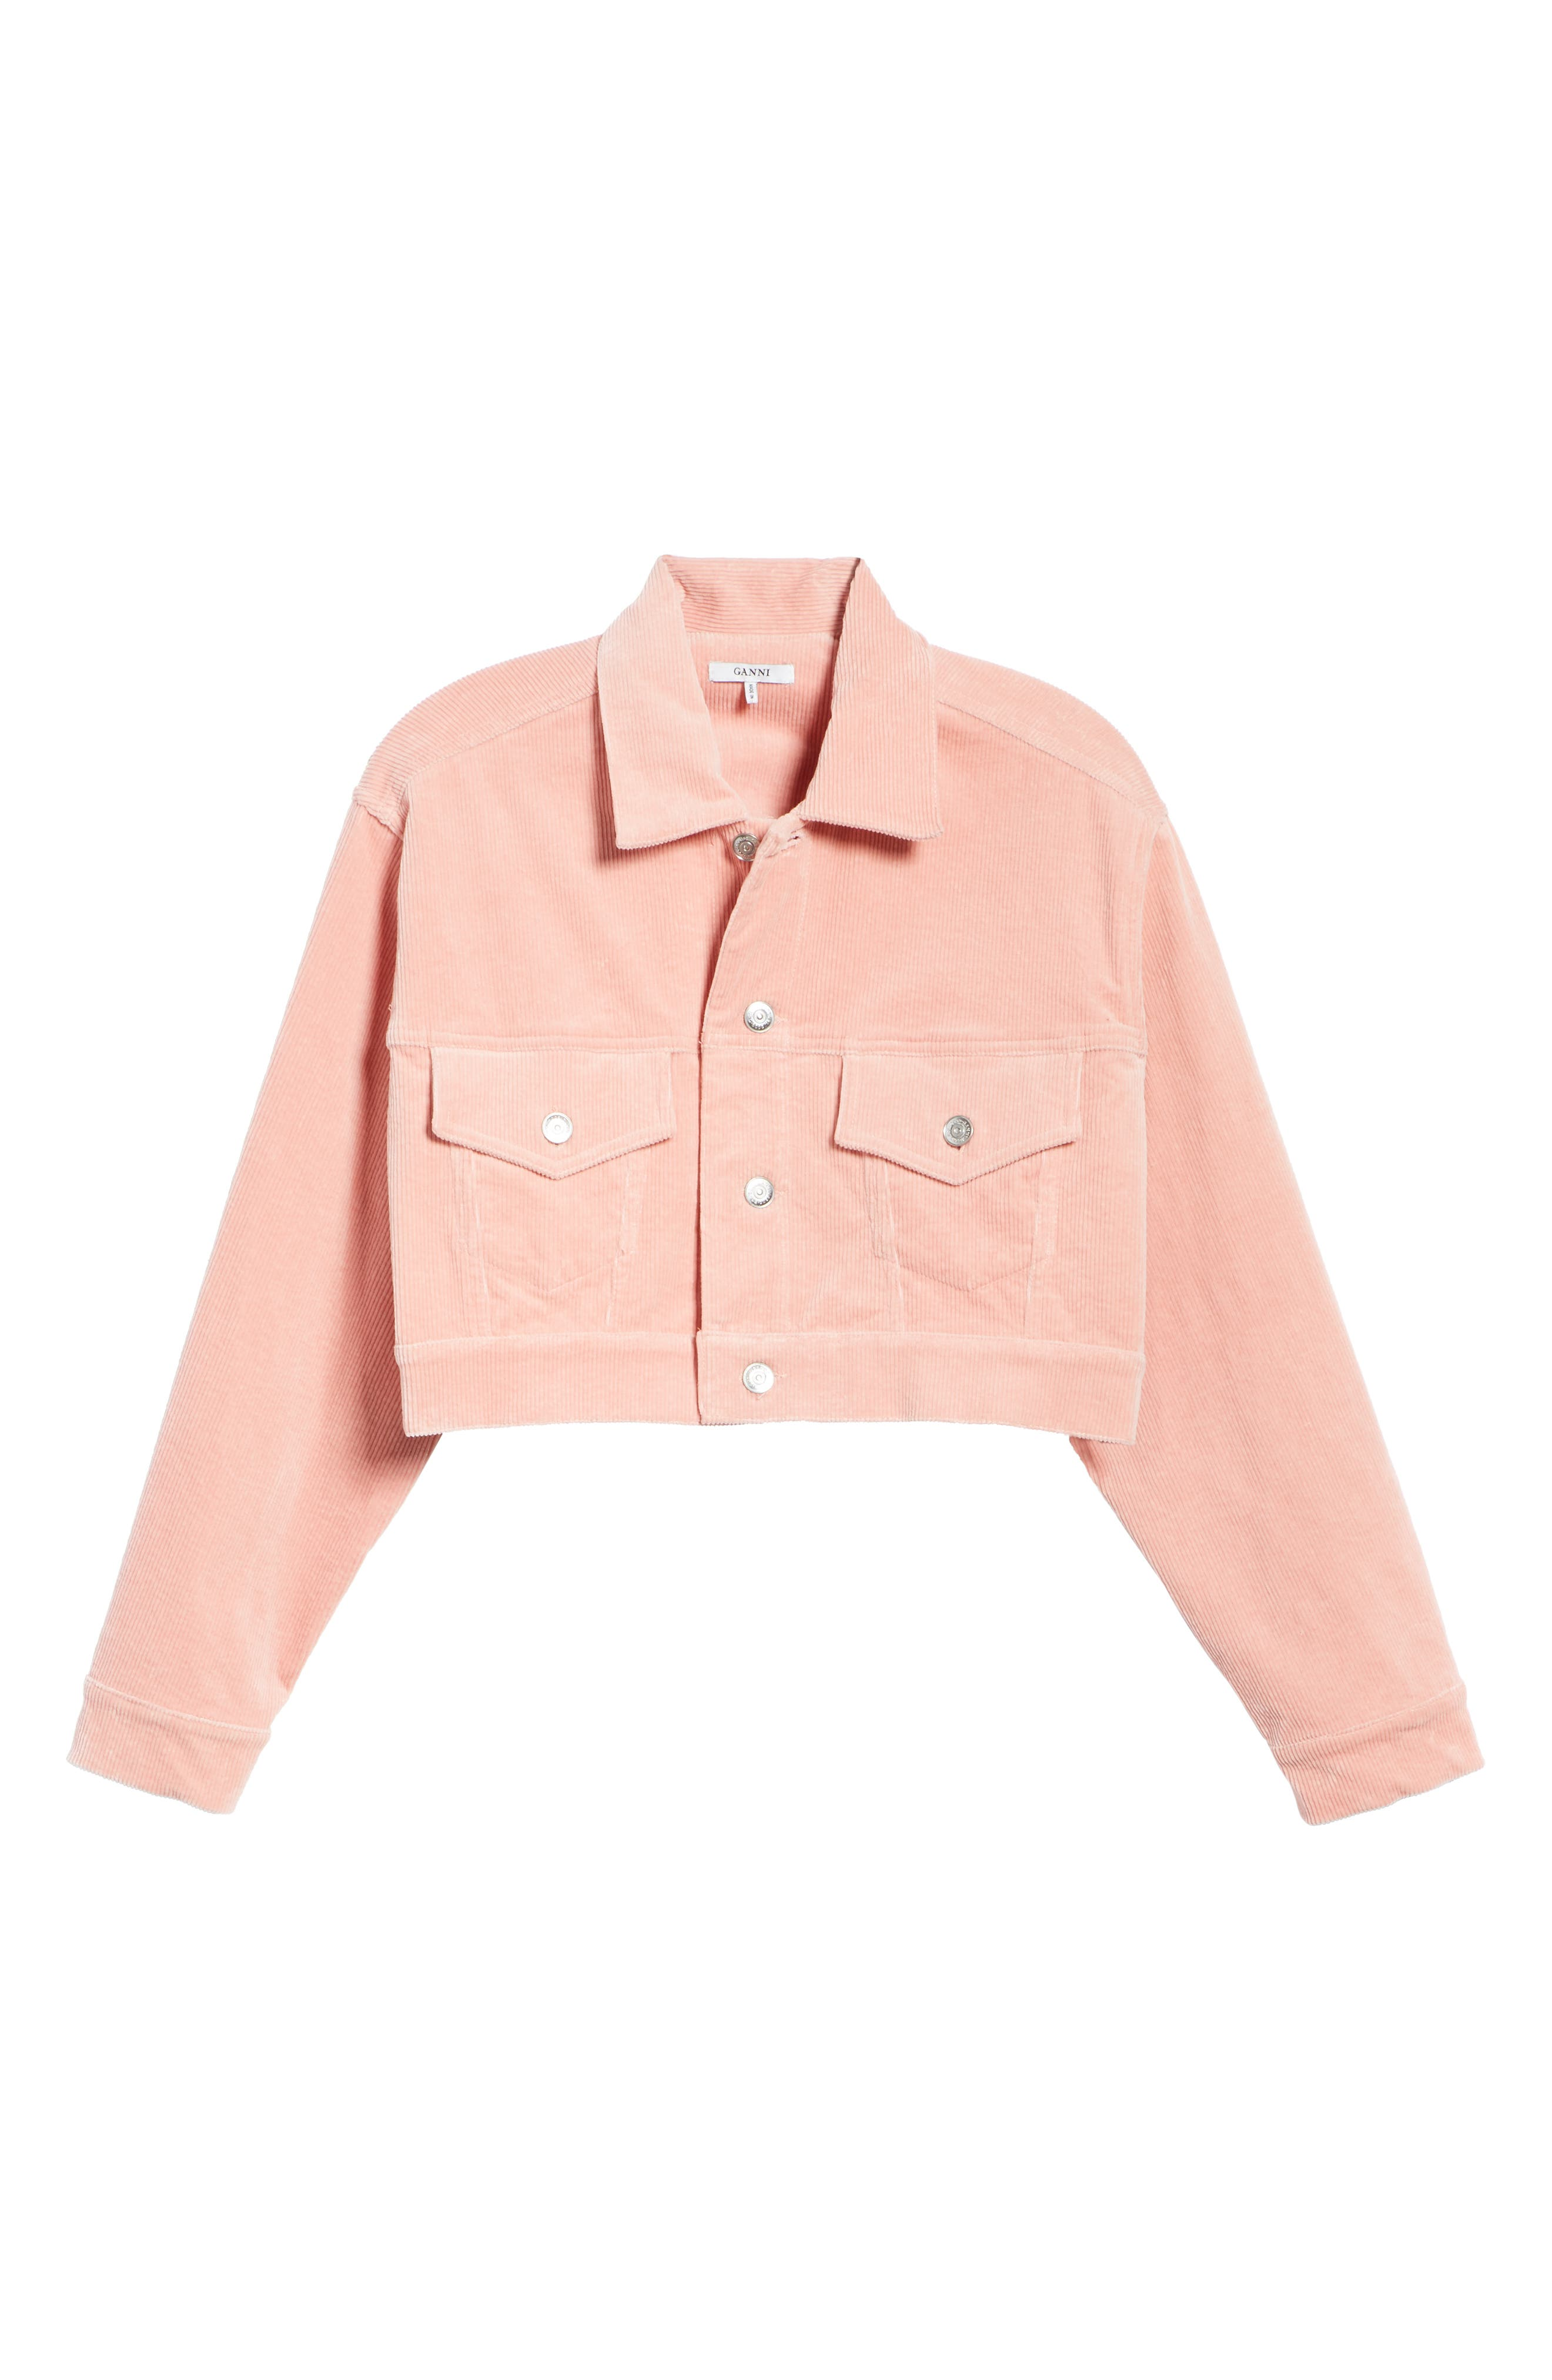 Stretch Corduroy Jacket,                             Alternate thumbnail 5, color,                             SILVER PINK 499